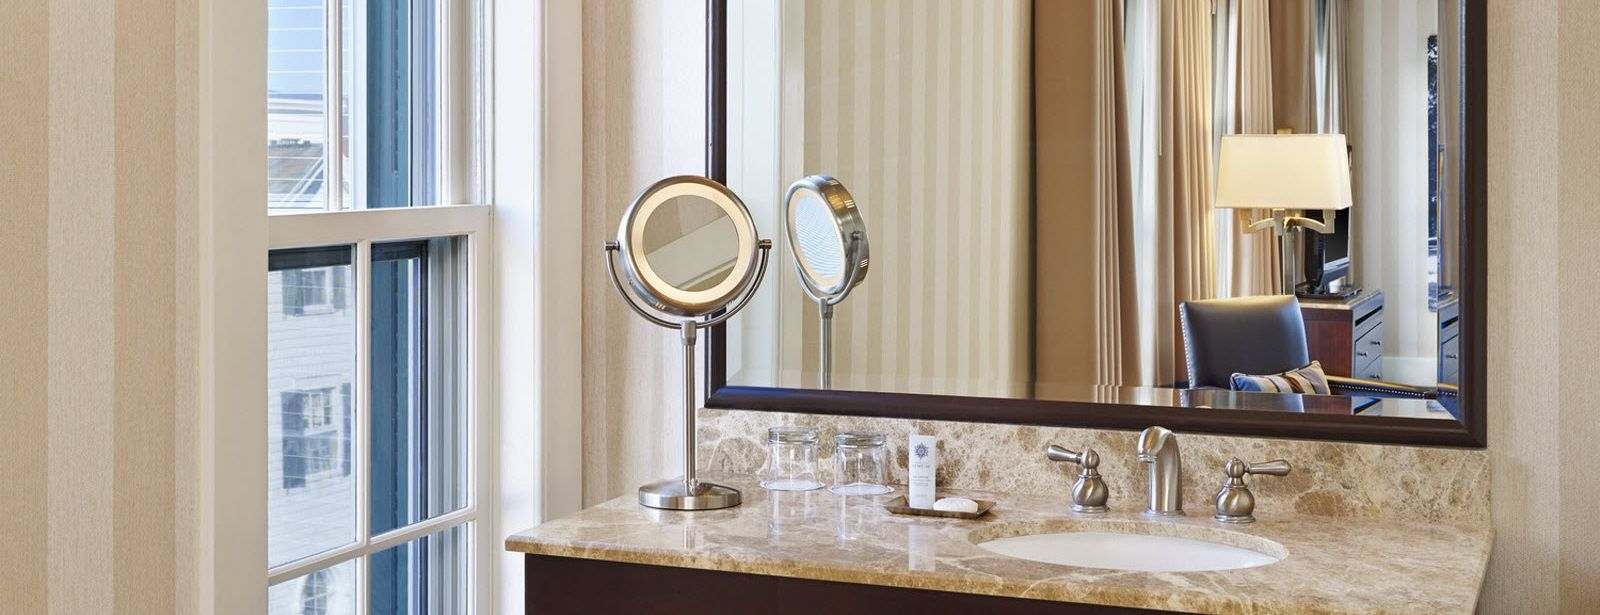 The Equinox, a Luxury Collection Golf Resort & Spa, Vermont Traditional guest room bathroom